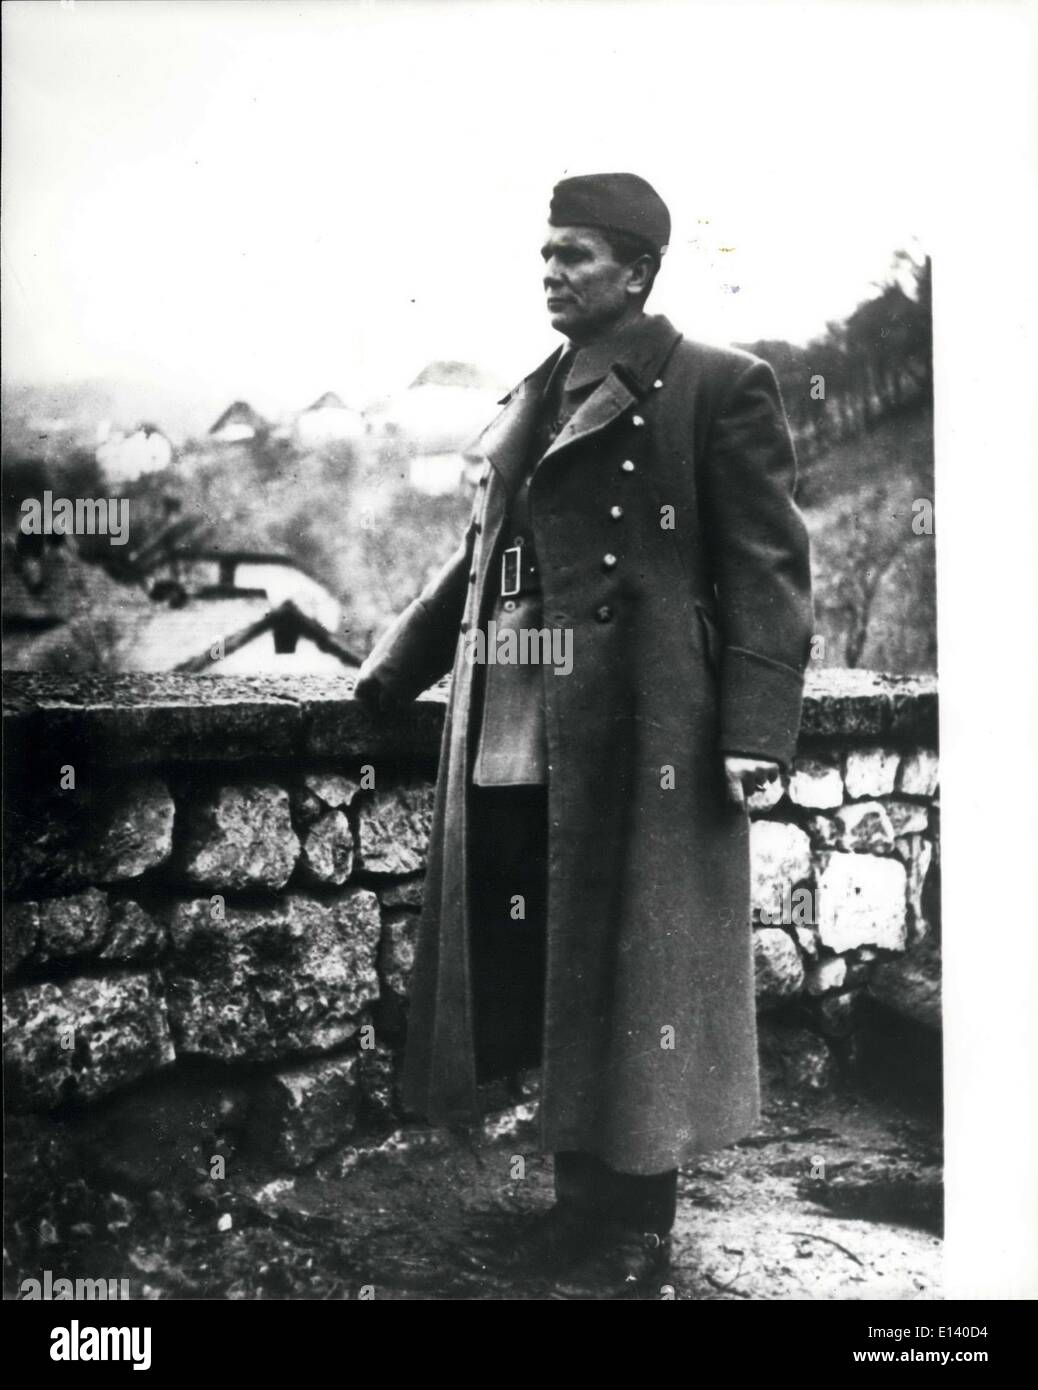 Mar. 31, 2012 - Josip Bros Tito, as he was known in 1943, seen on the even of the Second session of the anti-Fascist Stock Photo